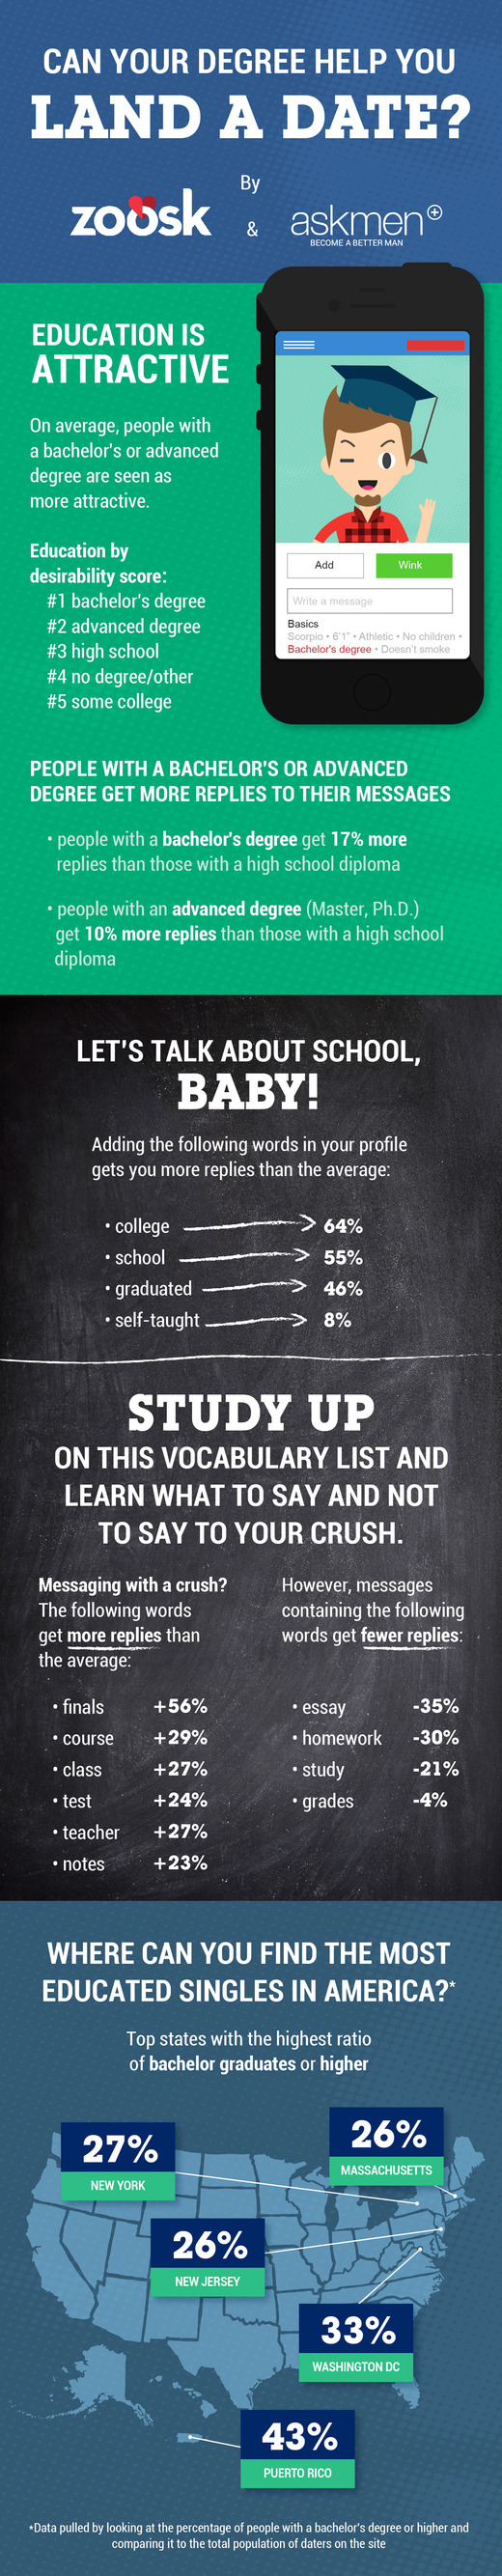 Education levels of online daters infographic. To read all the information check out the stats below.